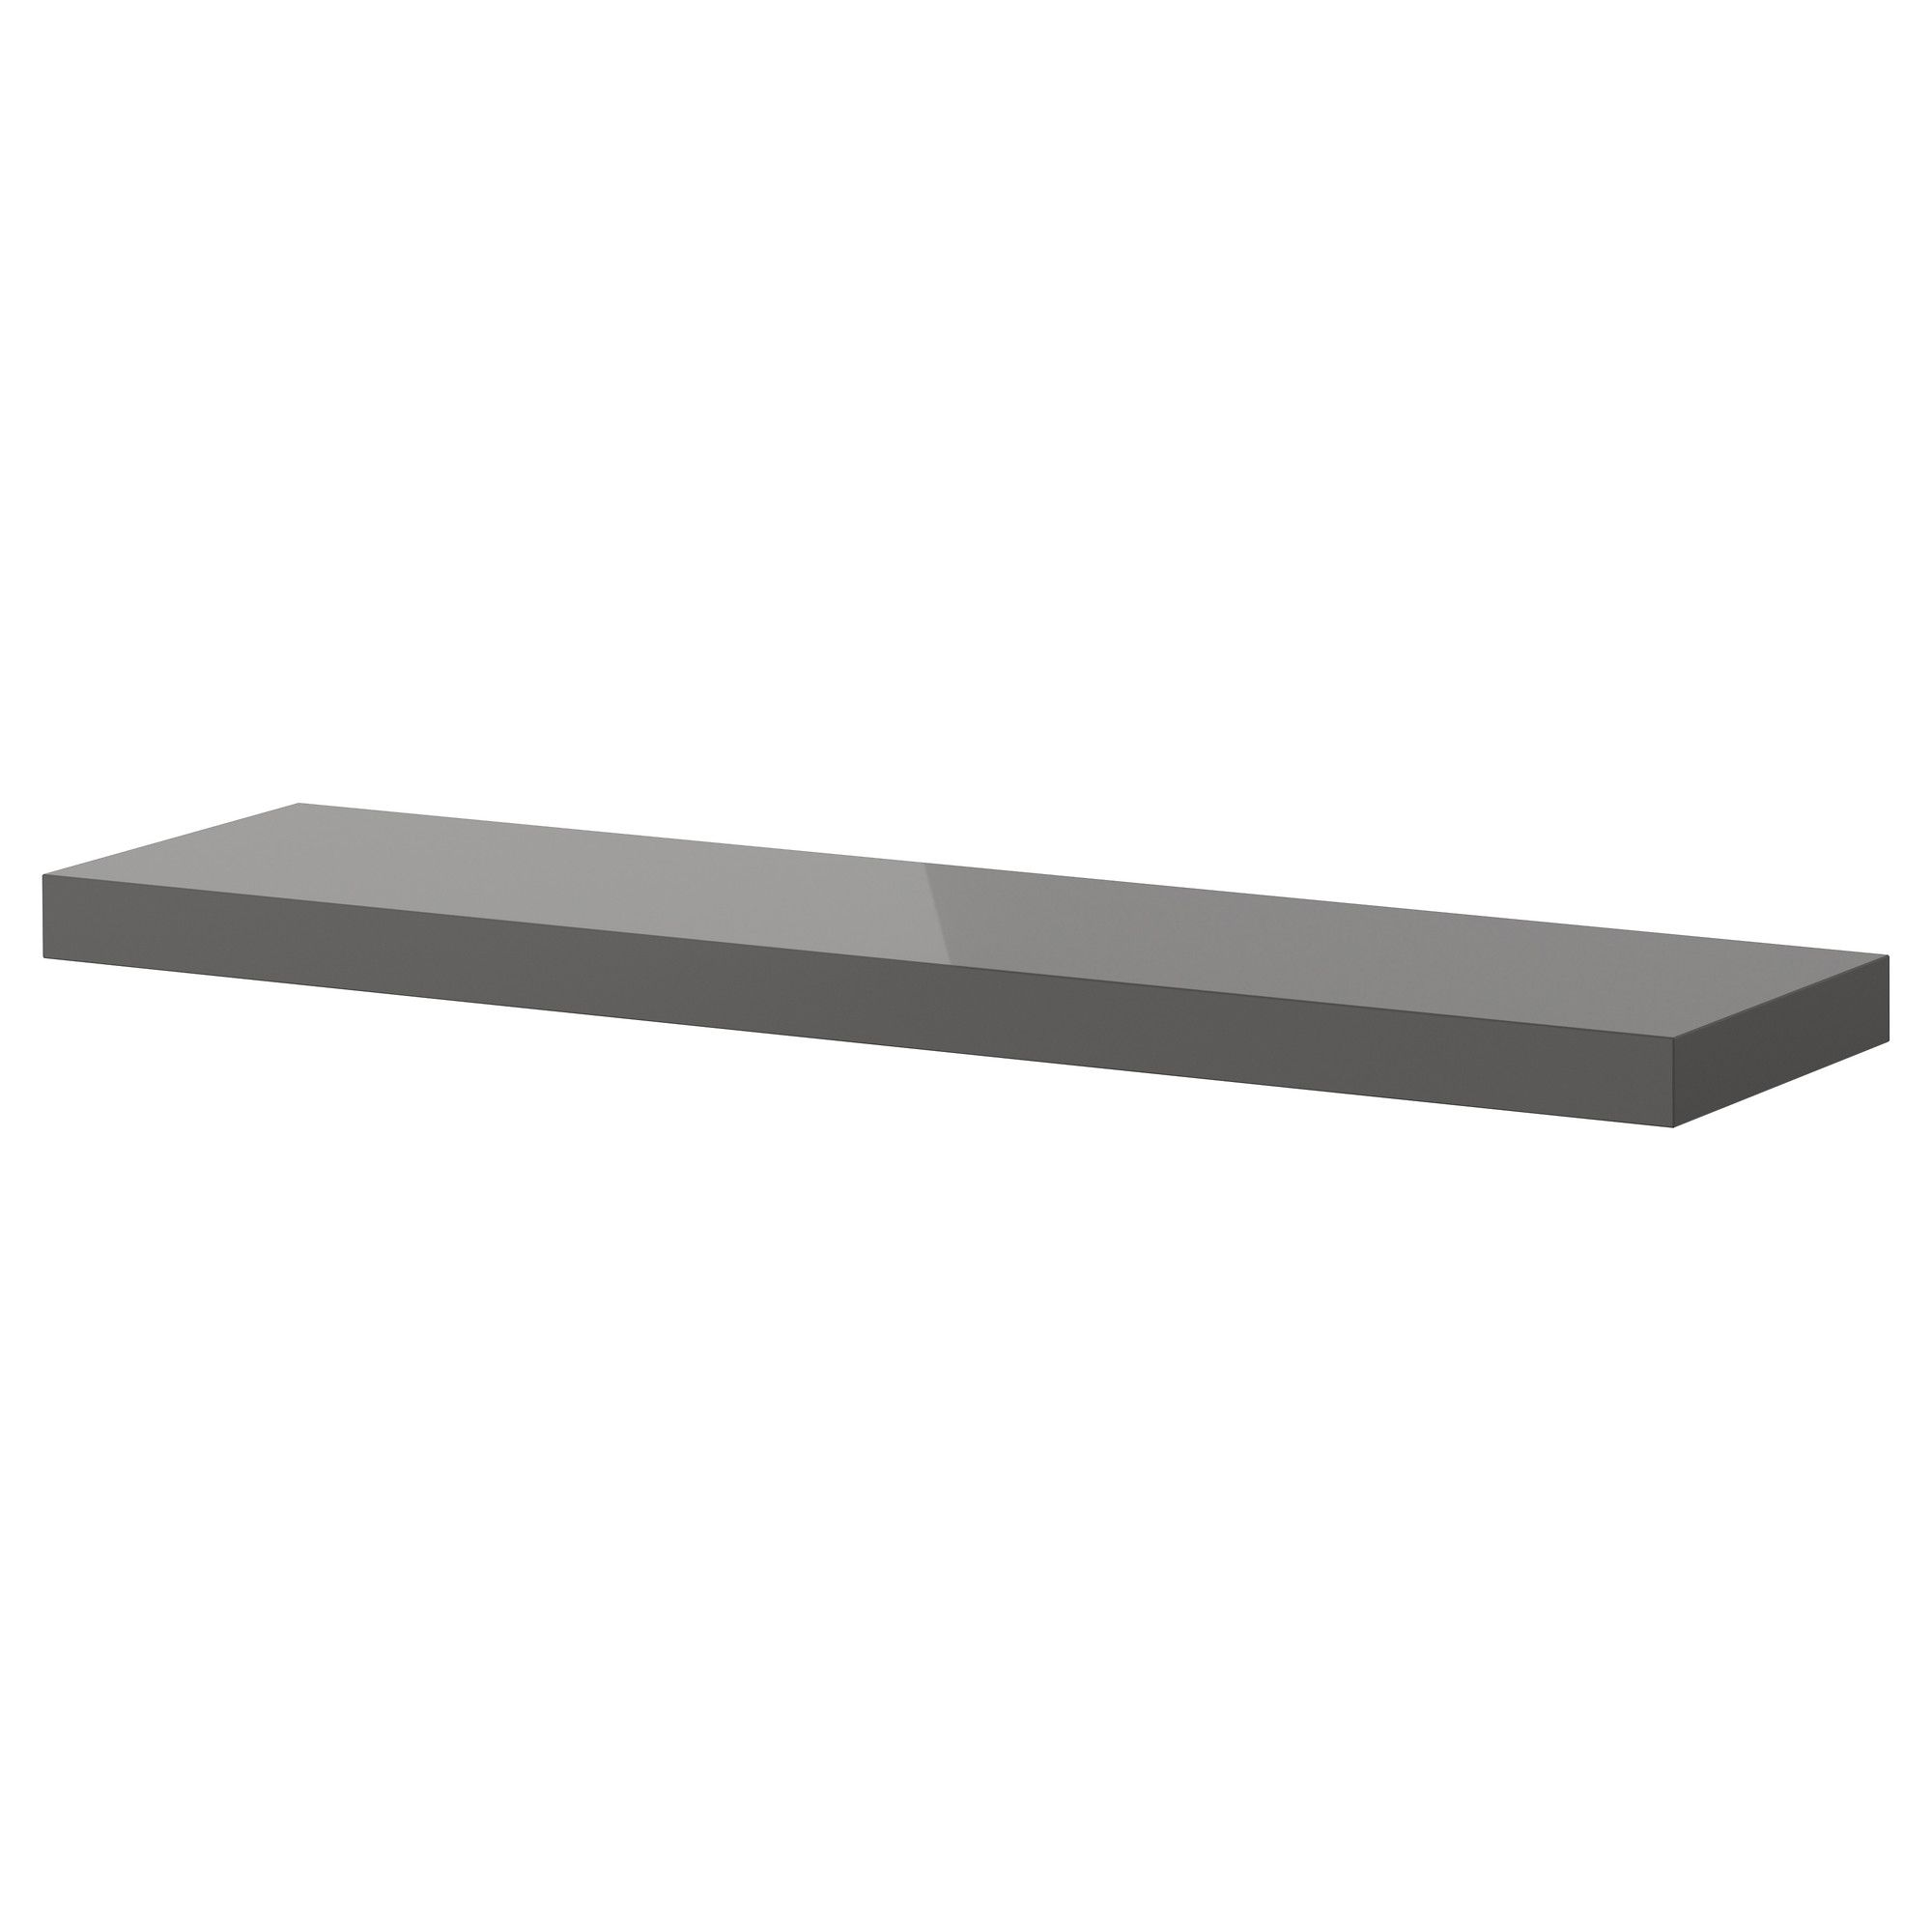 lack wall shelf high gloss gray ikea home floating shelves grey round pins mounted desk garage units unit staggered shelving you can paint audio cube storage kmart corner bookcase